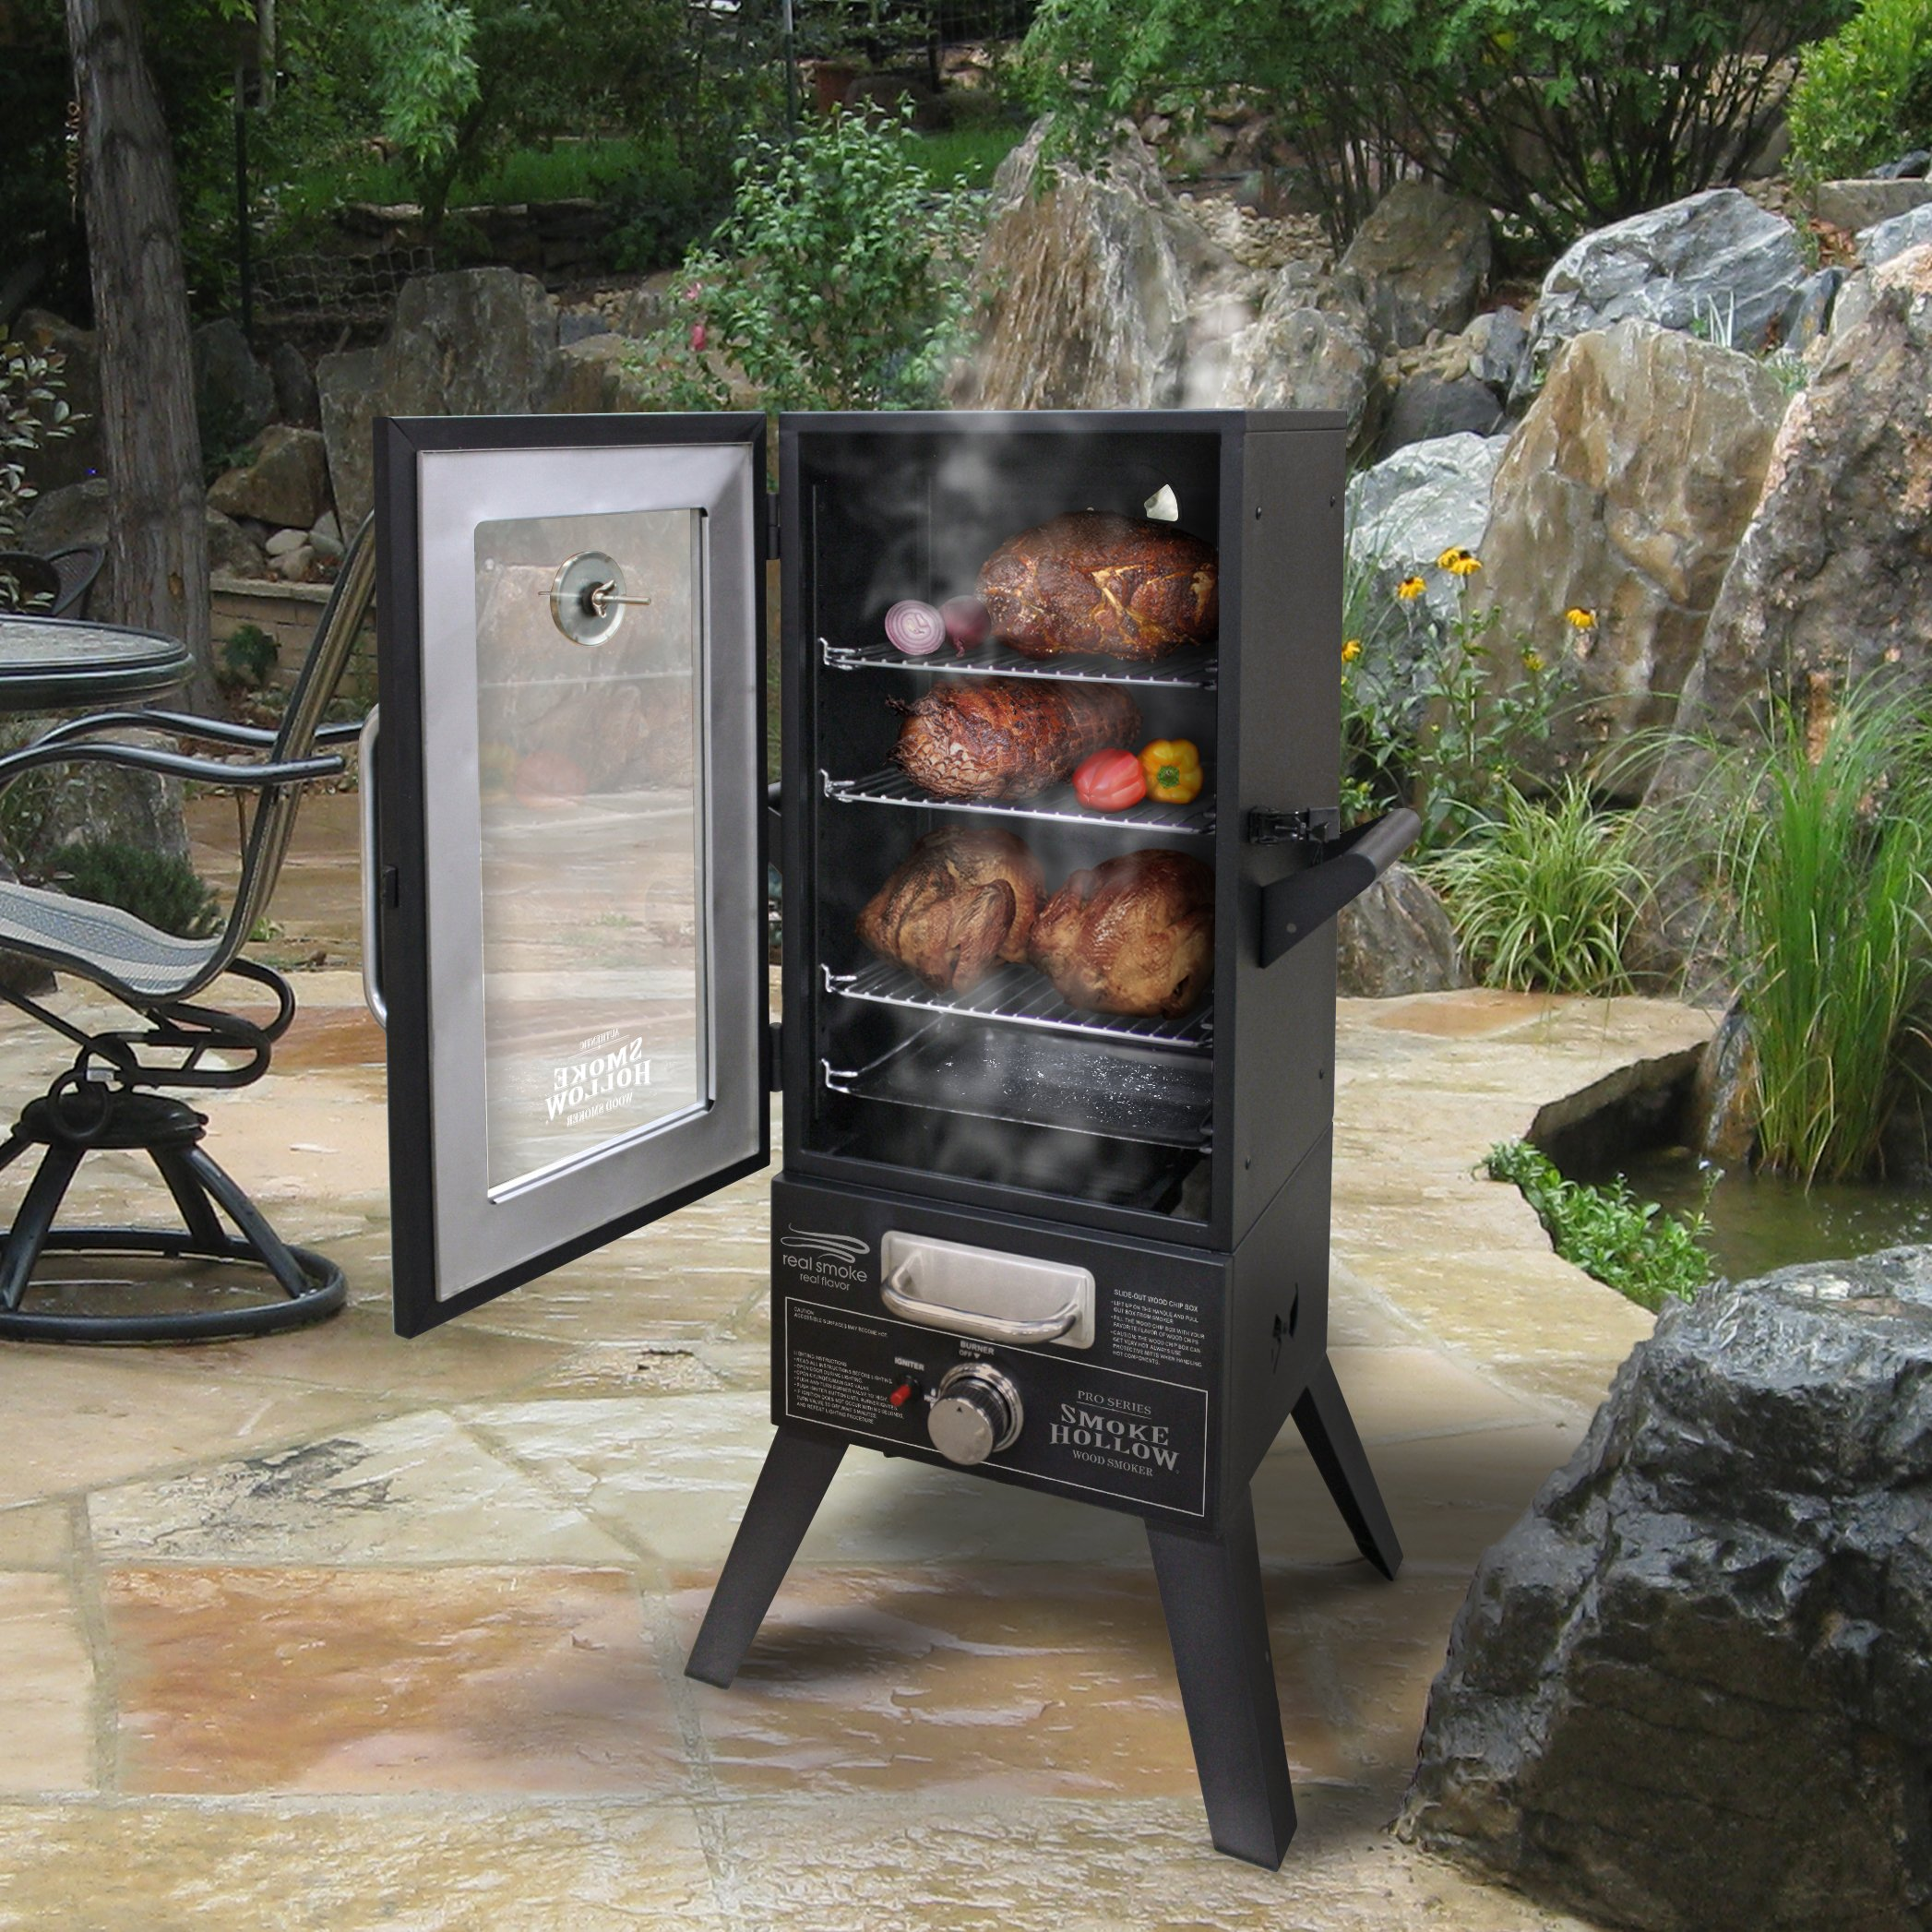 Smoke Hollow 3615GW 36-Inch Propane Gas Smoker with Window by Smoke Hollow (Image #1)